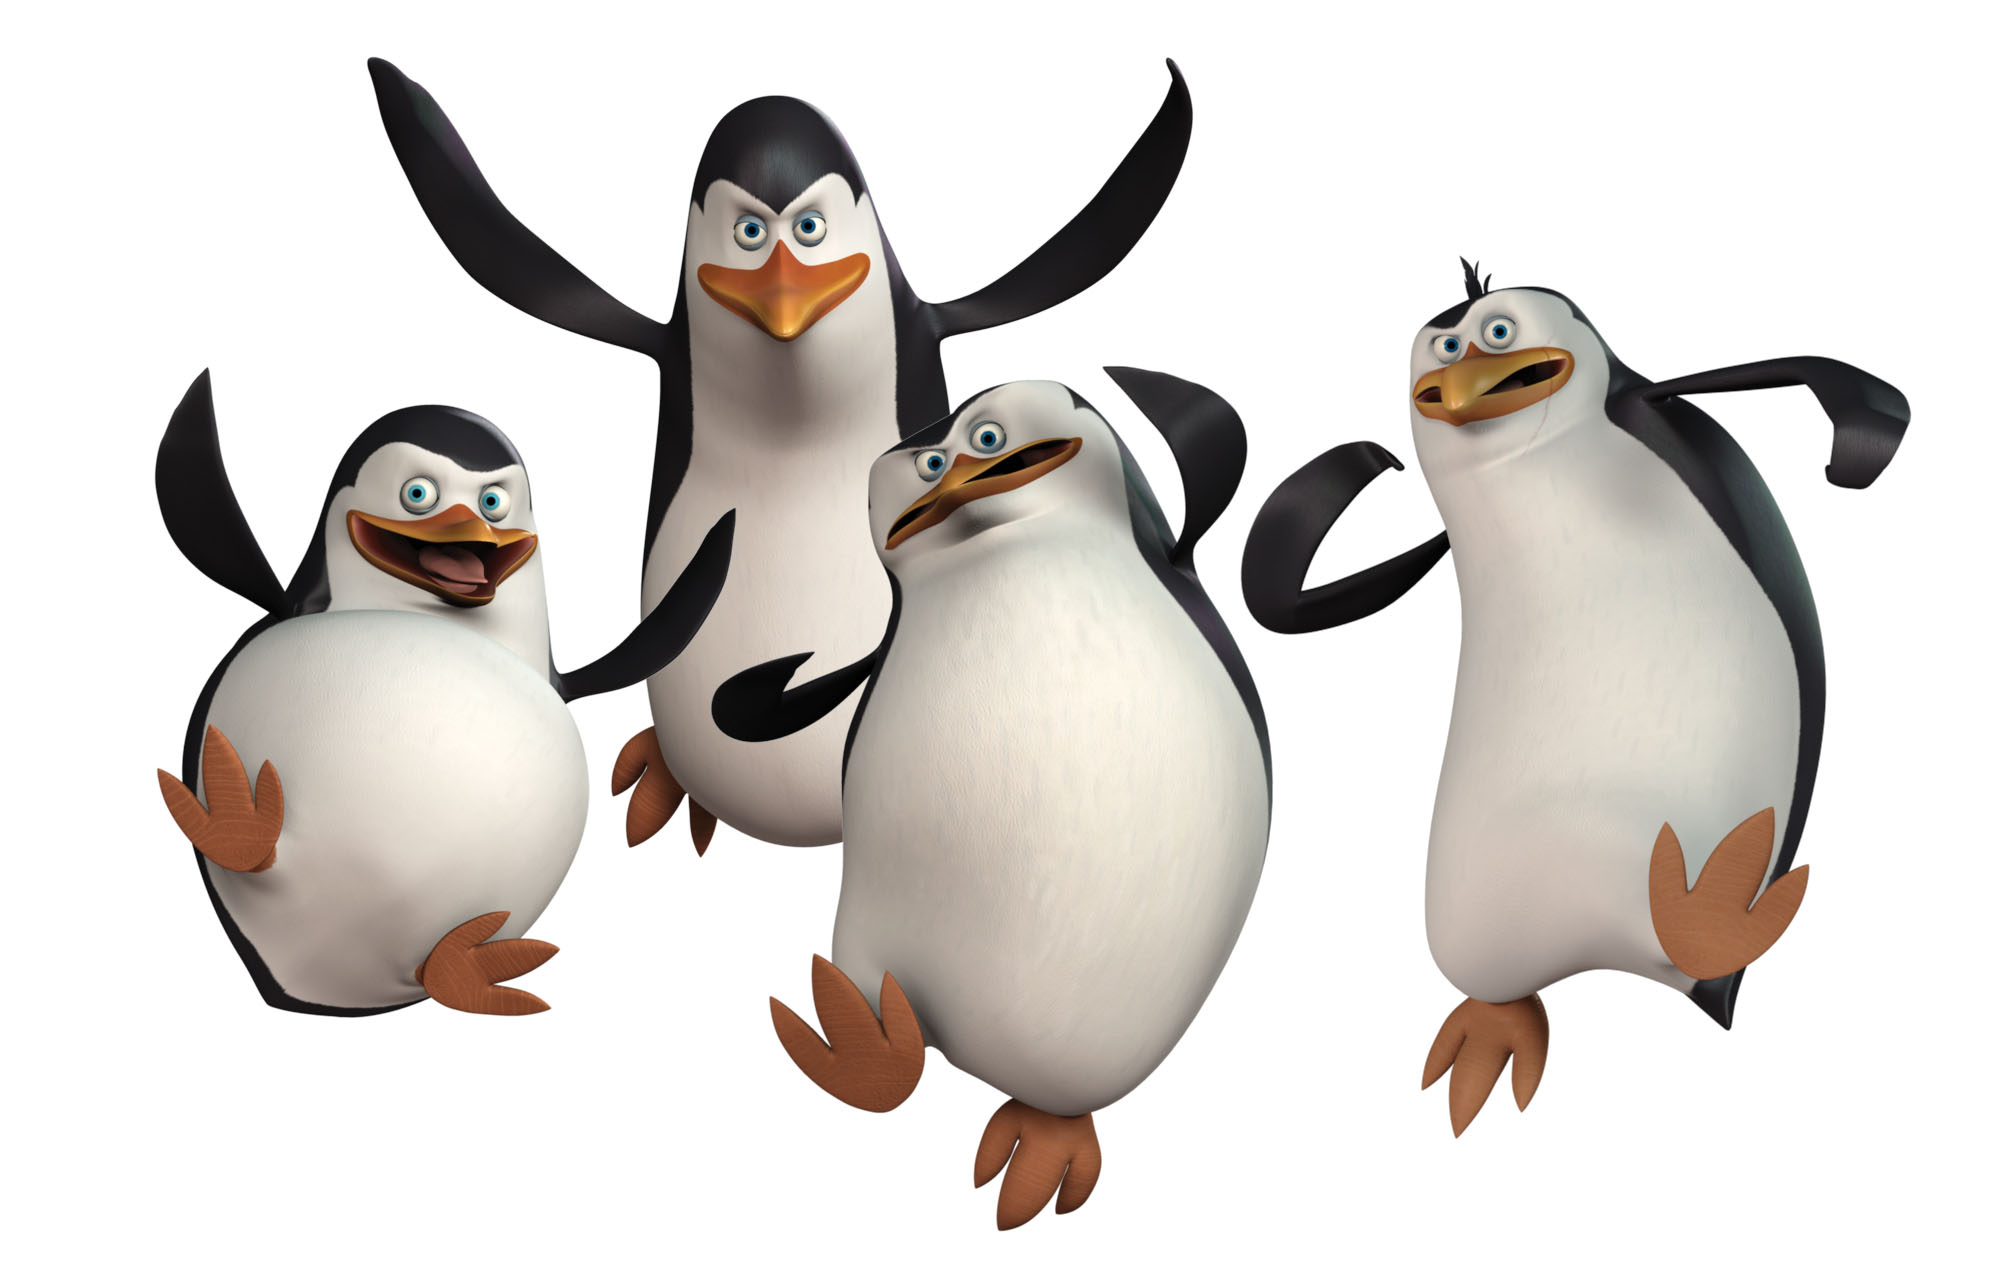 High Resolution Wallpaper | The Penguins Of Madagascar 2000x1271 px